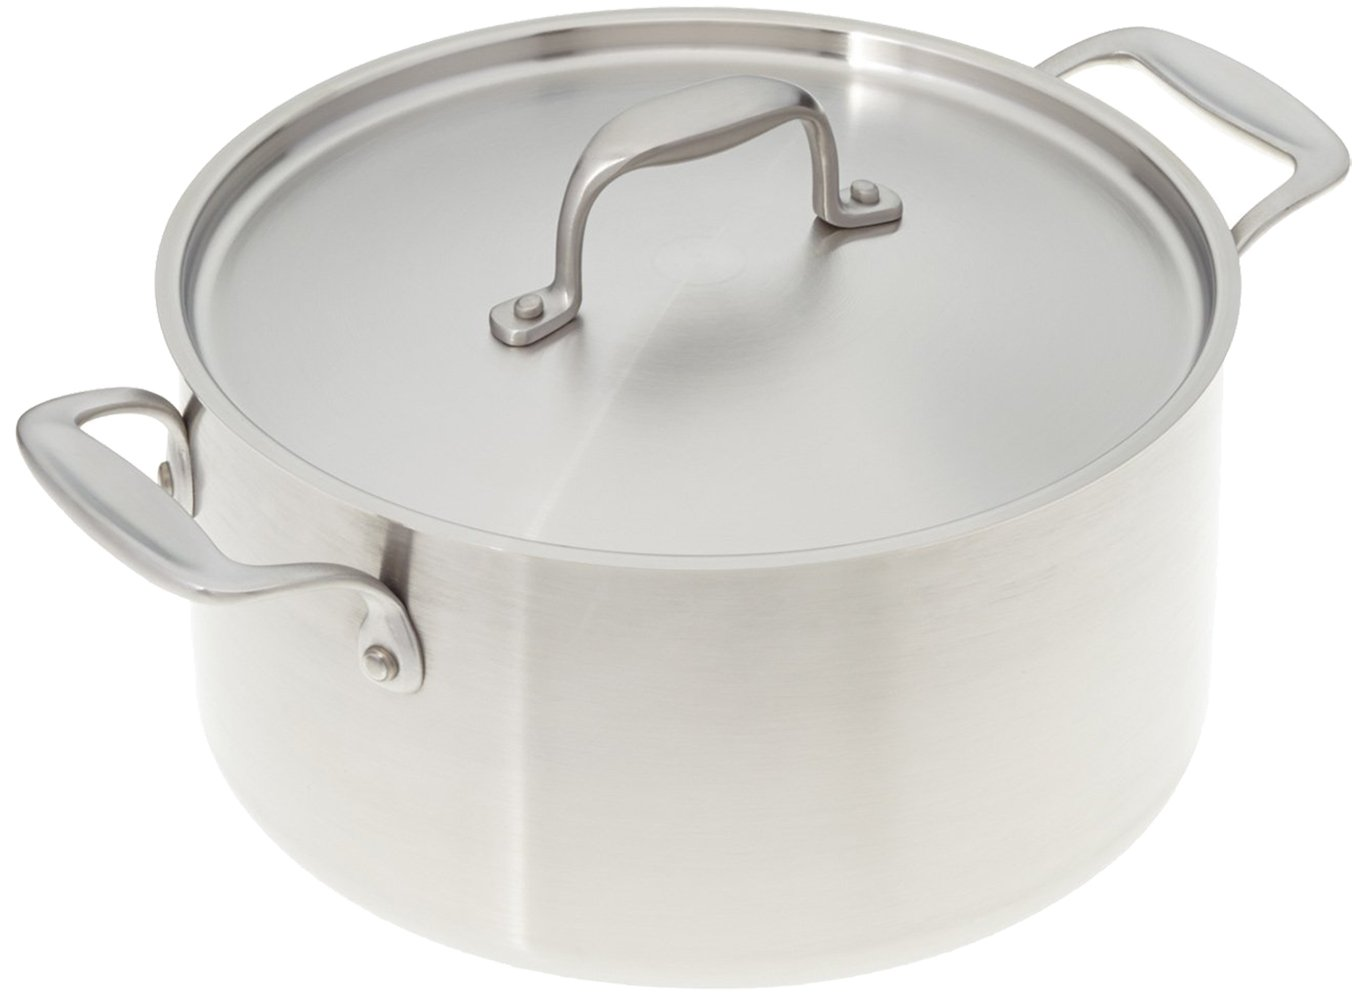 Stainless Steel Cookware - American Kitchen 6-Quart Stainless Steel Stock Pot - Superior Heat Conductivity - Tri-Ply Construction -Made in the USA